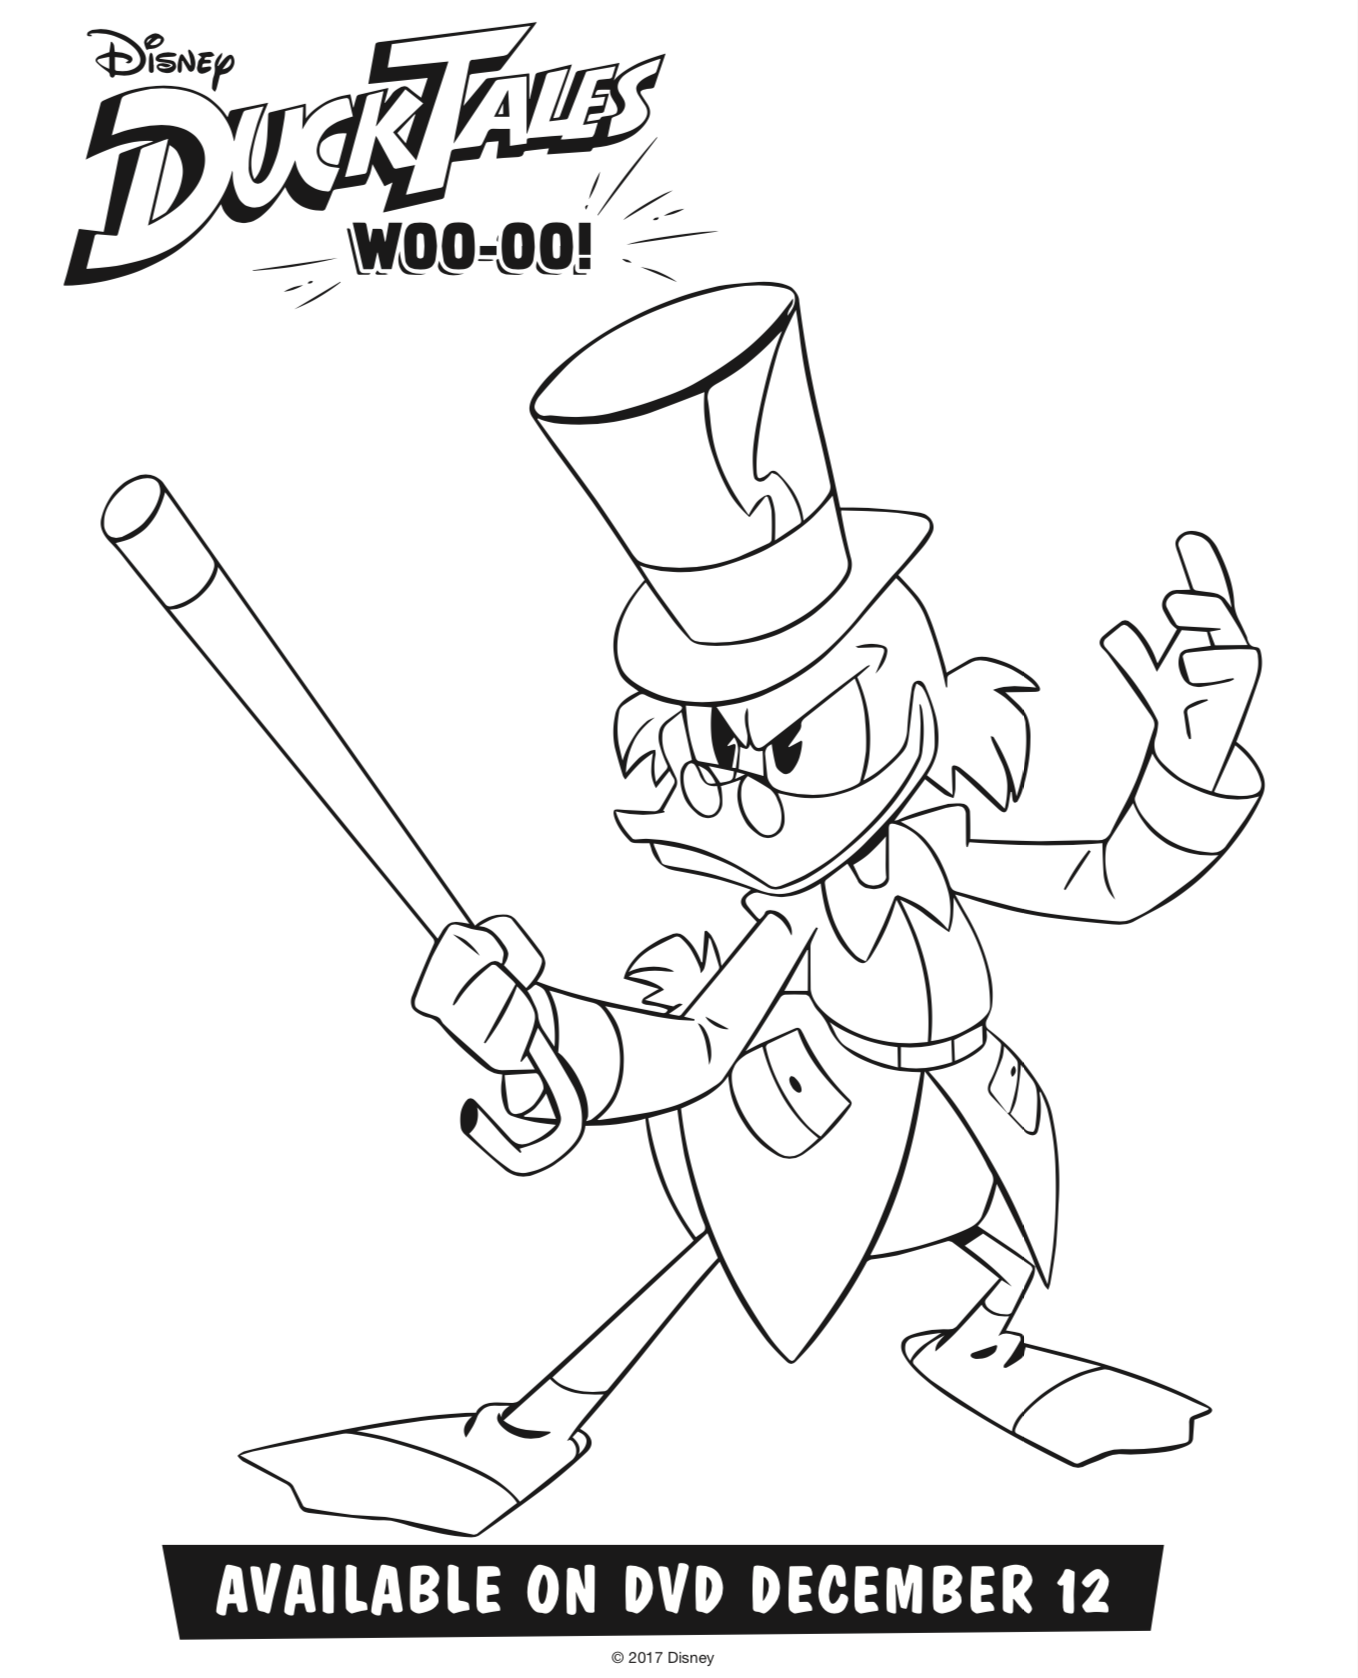 scrooge mcduck coloring pages - tangled the series queen for a day ducktales woo oo